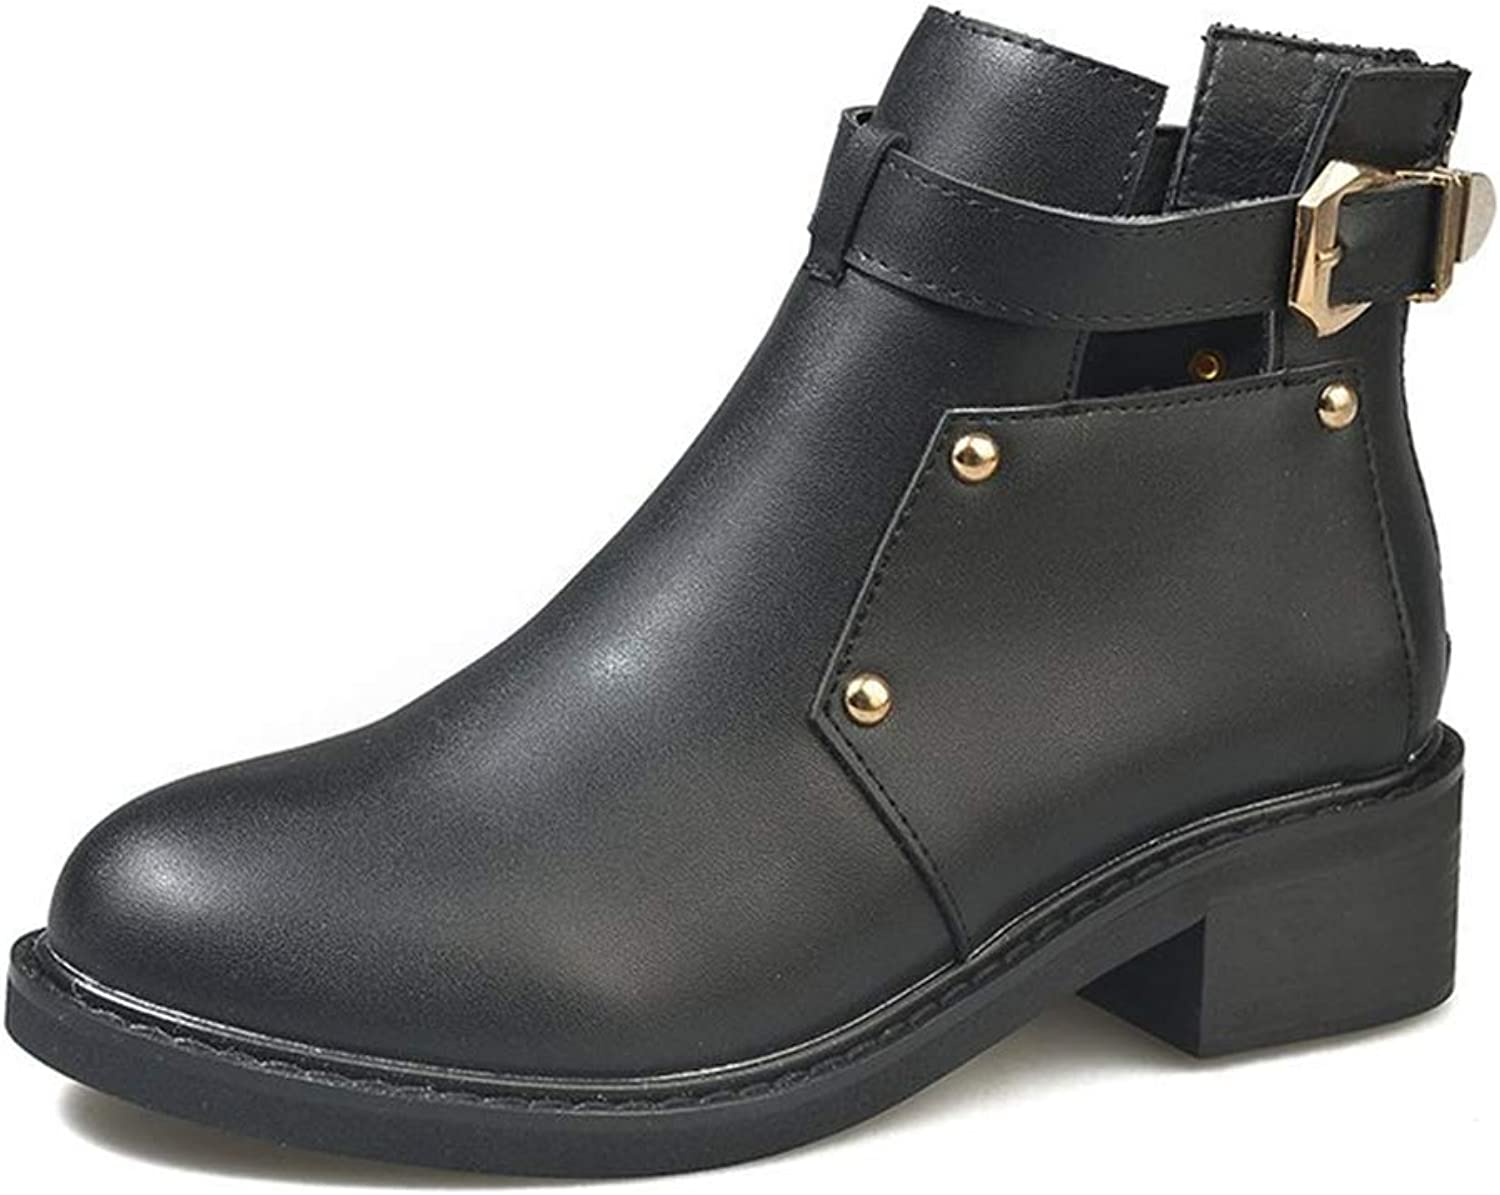 Women's Ankle Boots, Fashion Martin Boots Thick Heel Boots Autumn New Round Head Chelsea Boots Party & Evenin Dress shoes (color   Black, Size   36)